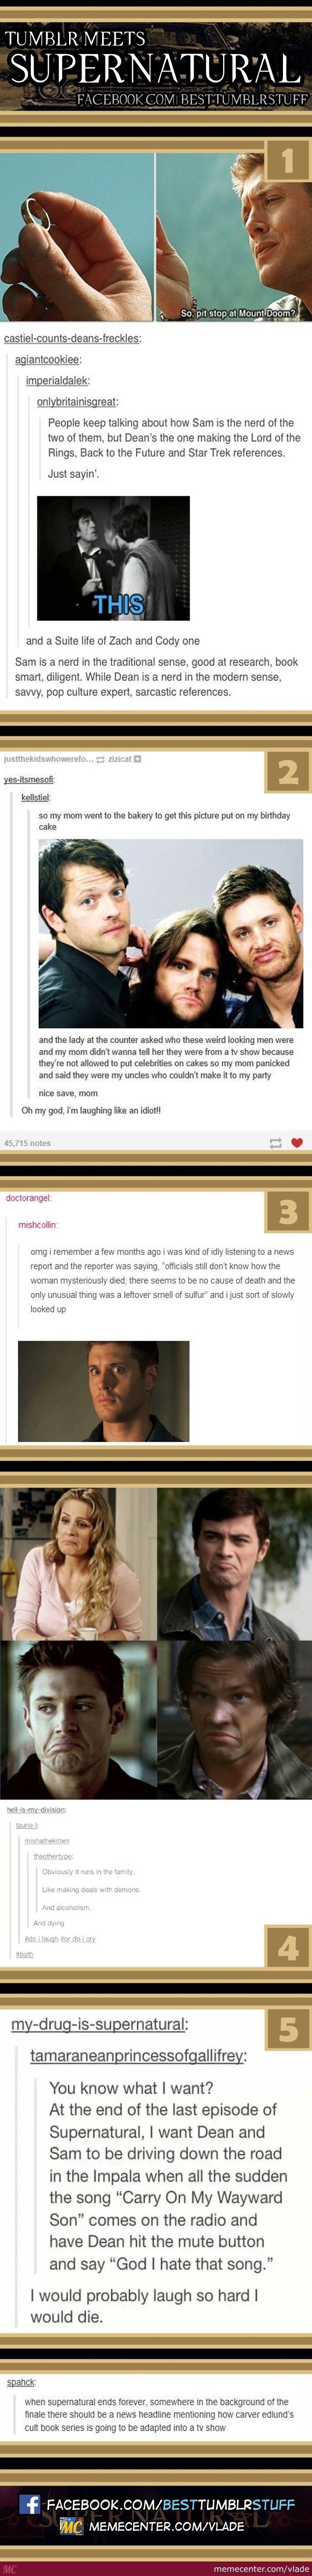 Tumblr Meets Supernatural by vlade - Meme Center. The last two kill me...